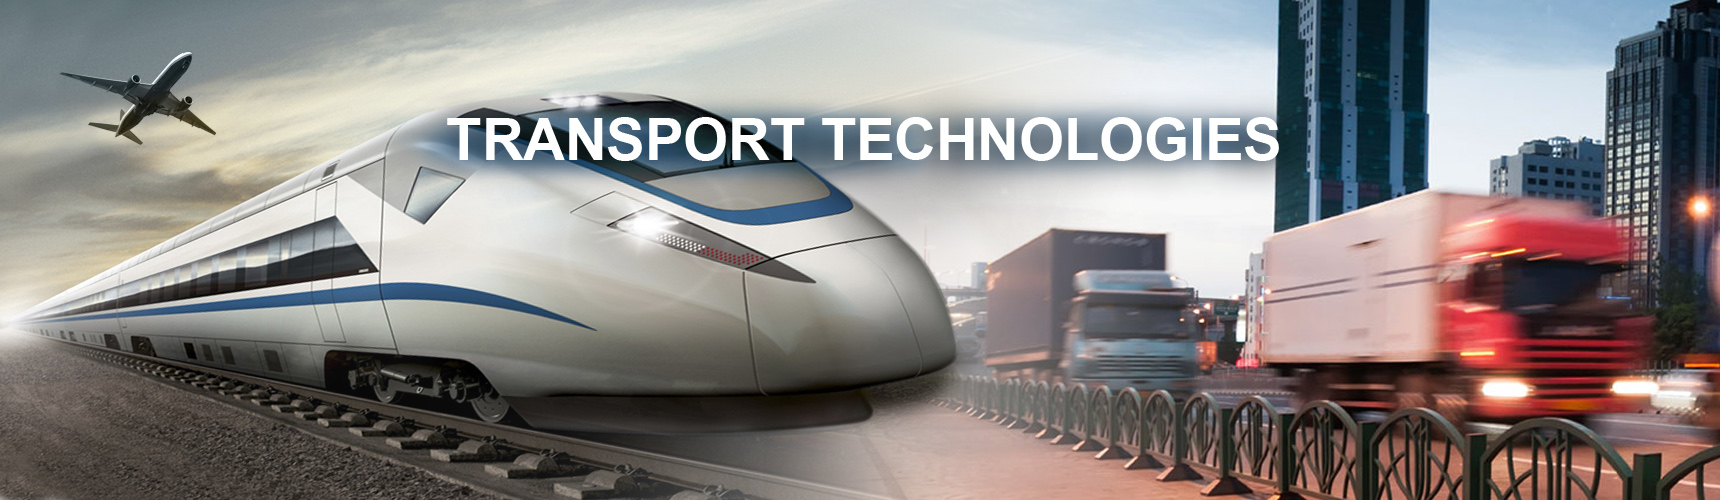 Transport technologies